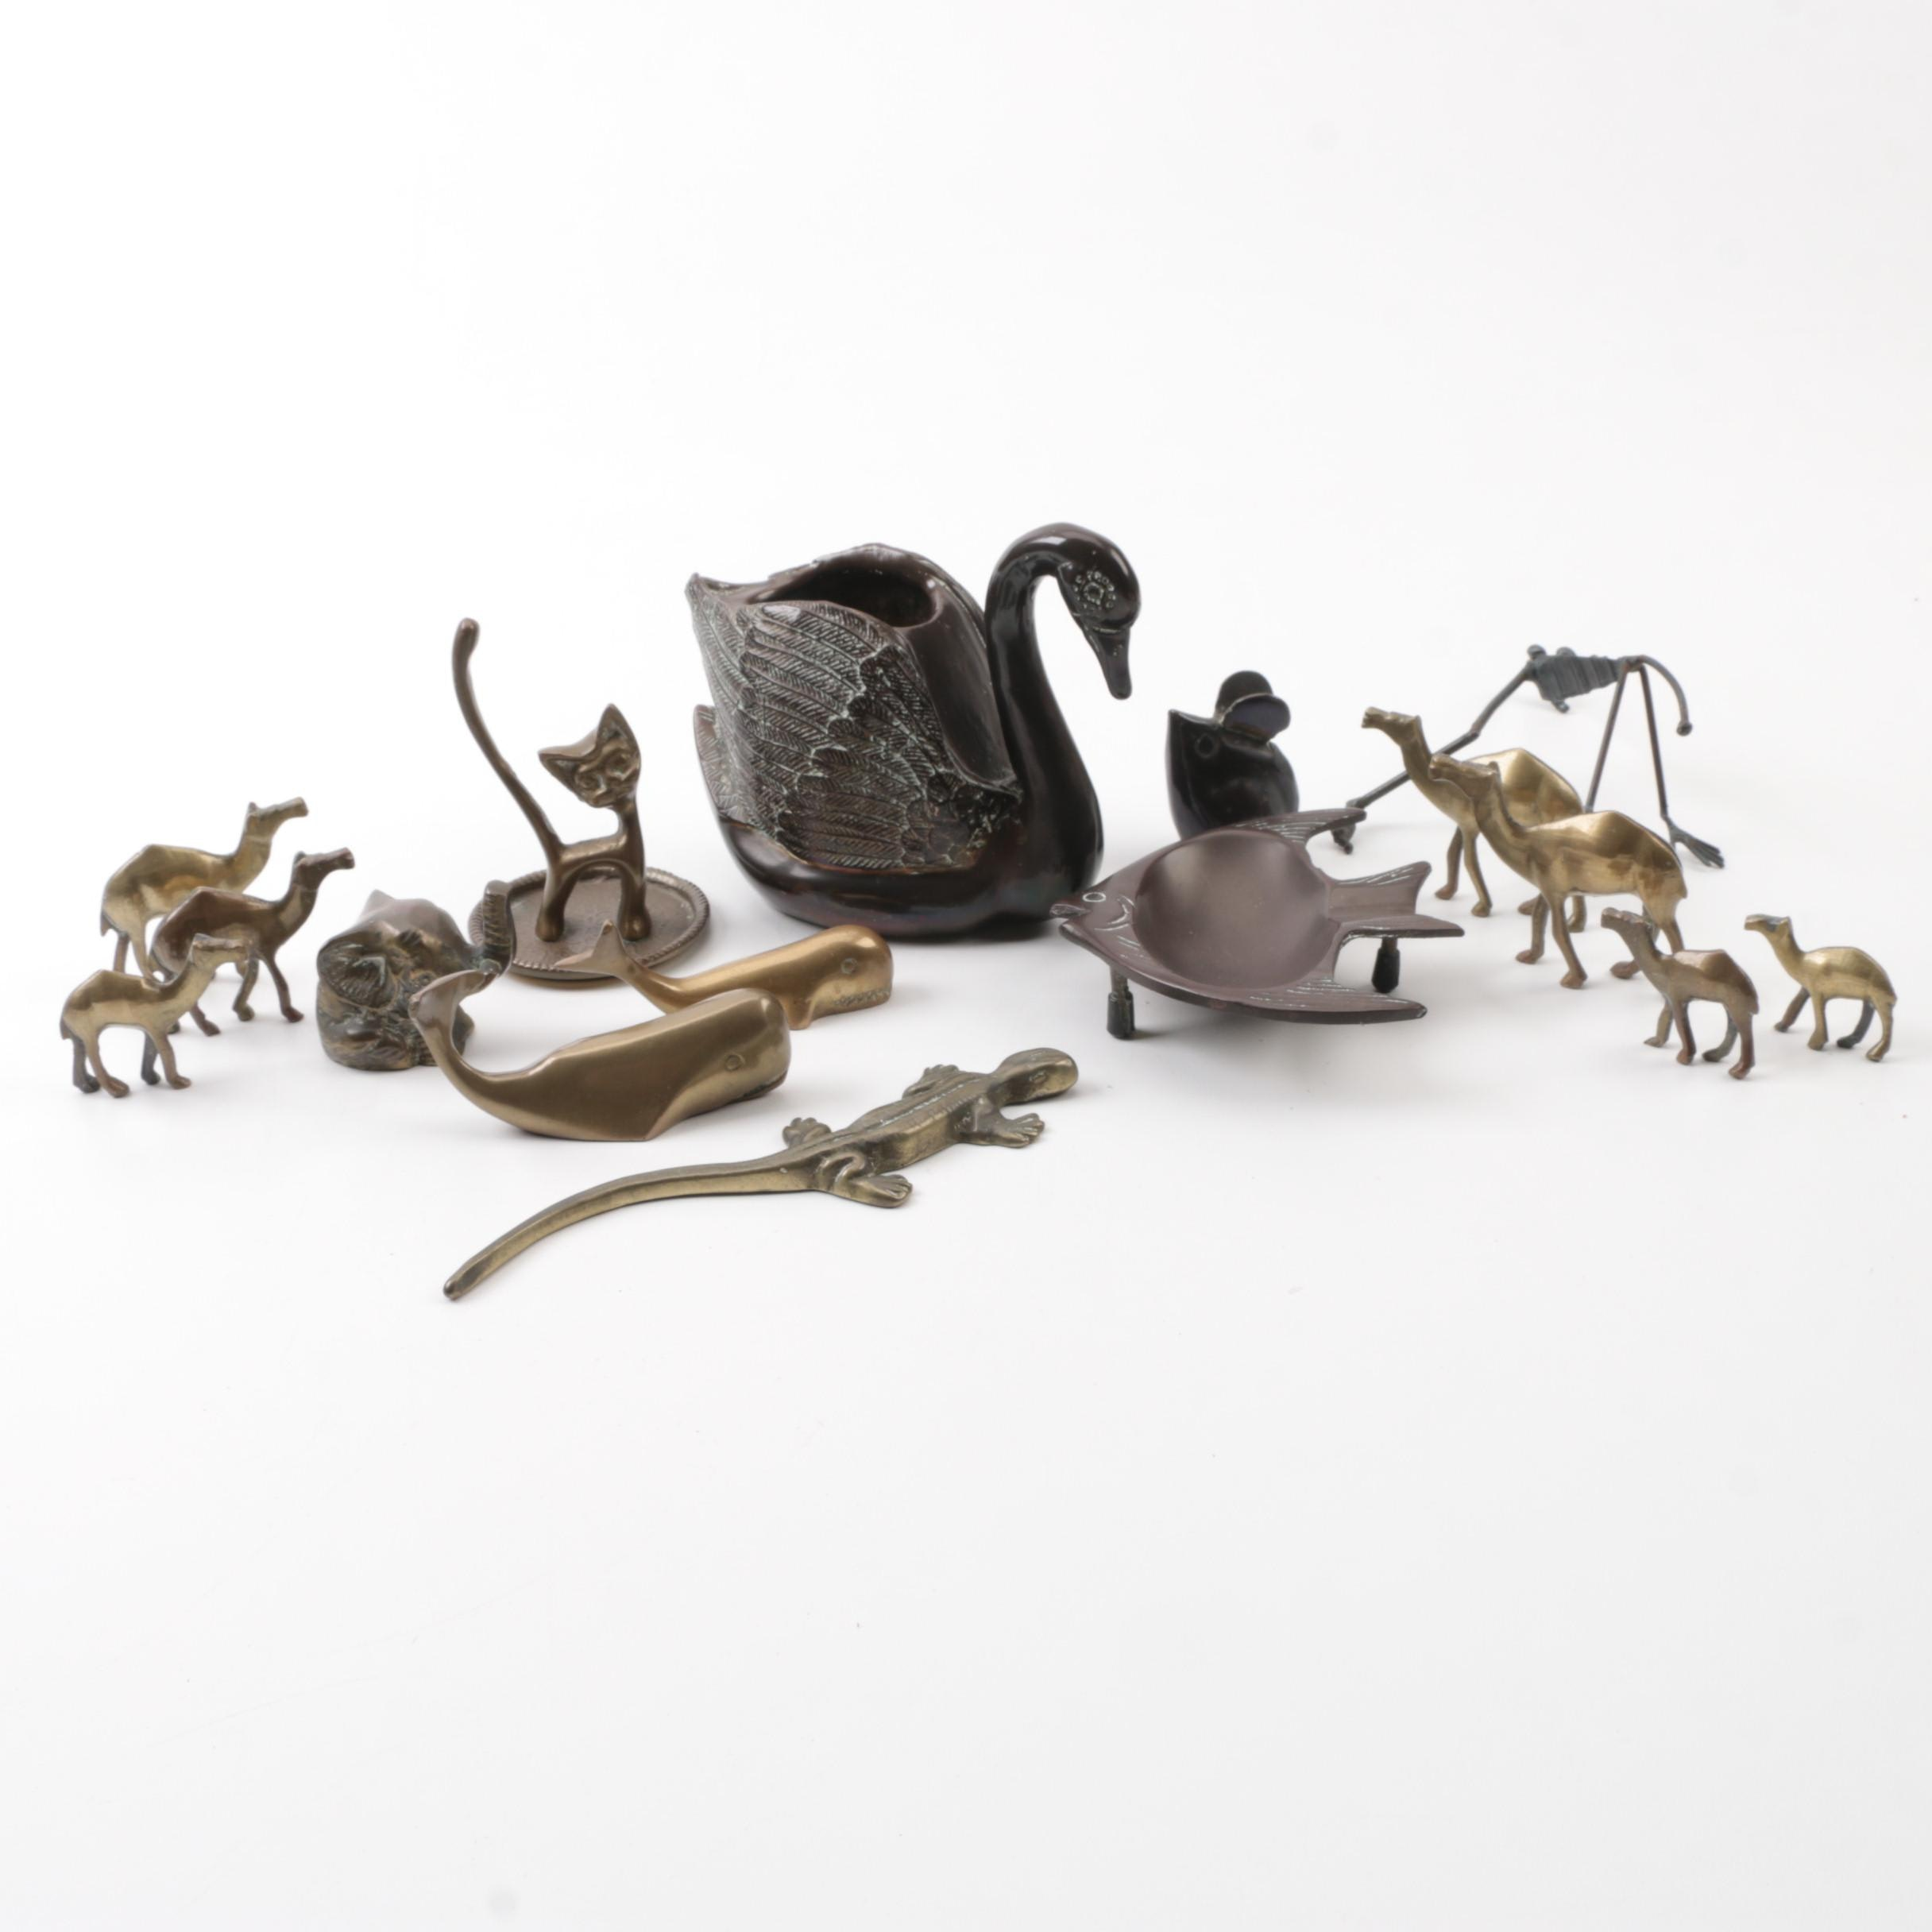 Vintage Brass Animal Figurines and Décor